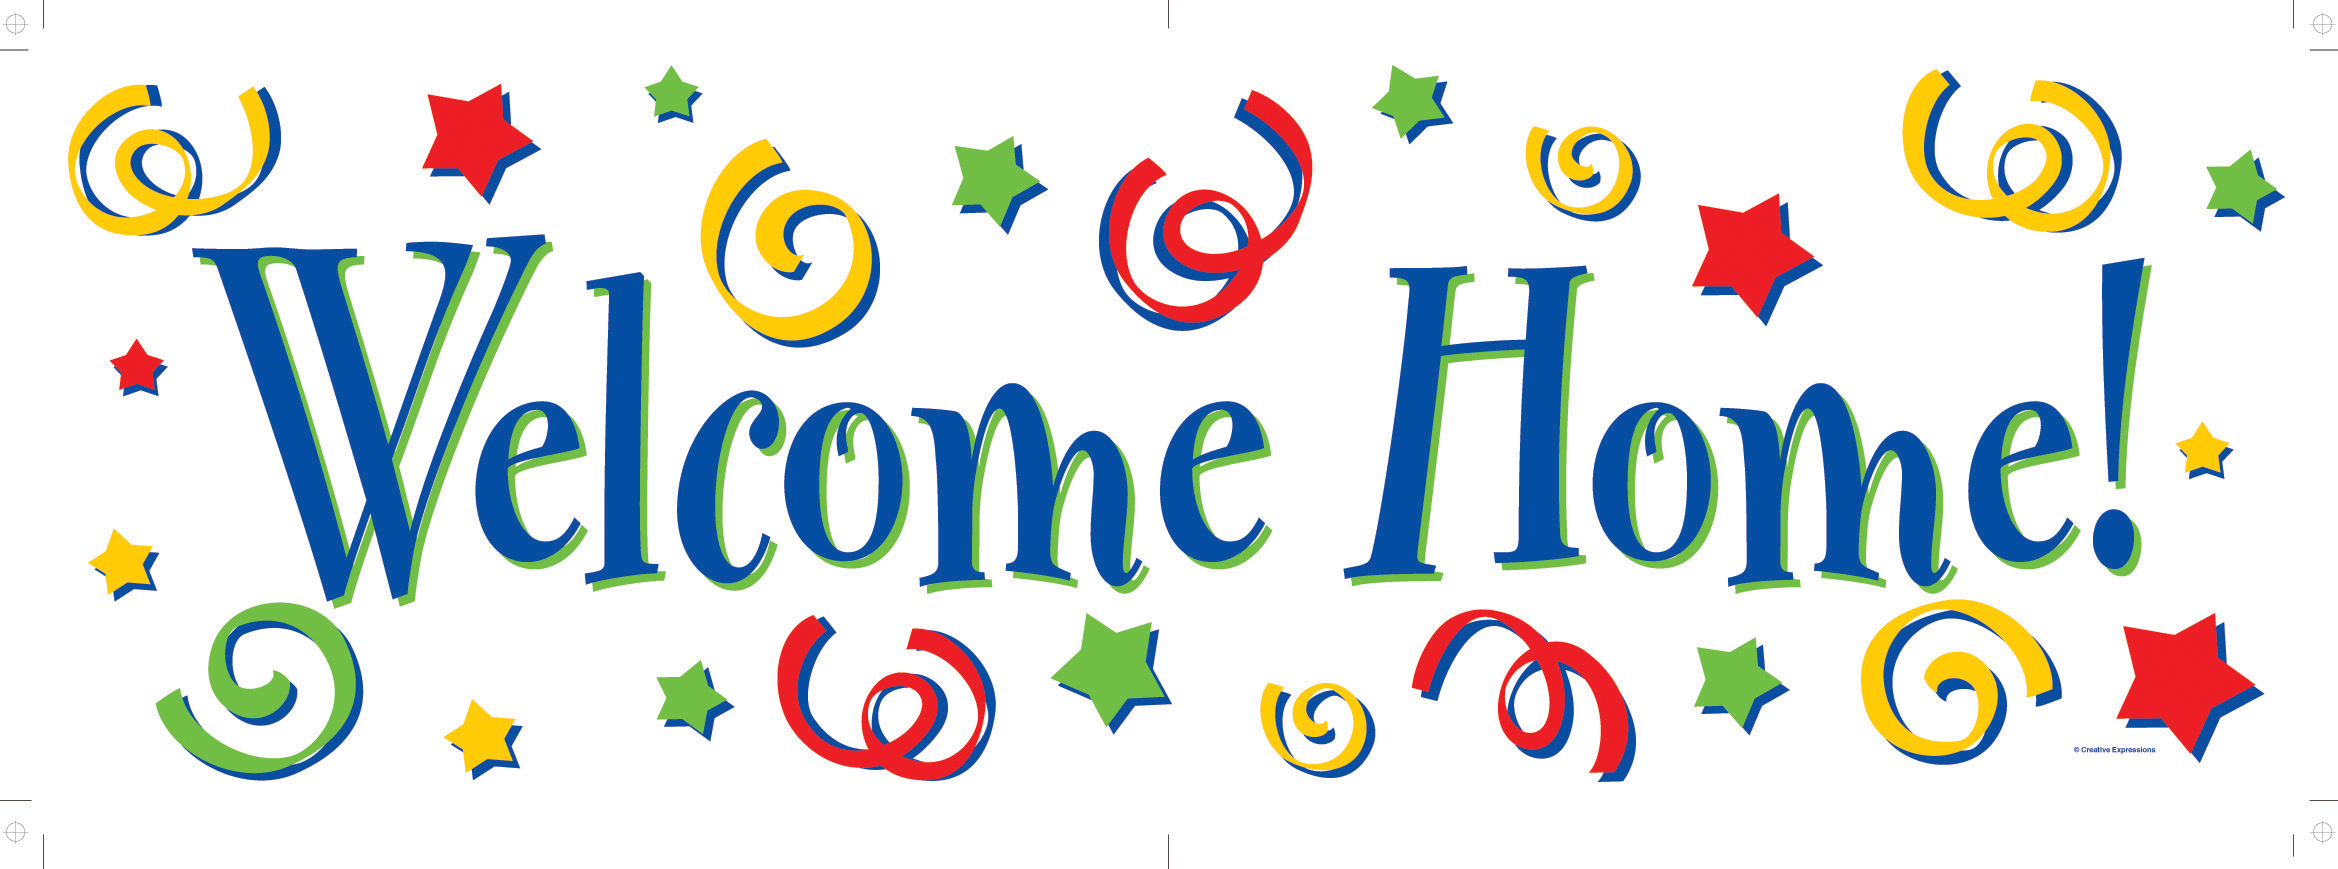 Free clipart welcome back mom from the cats. Collection of home download